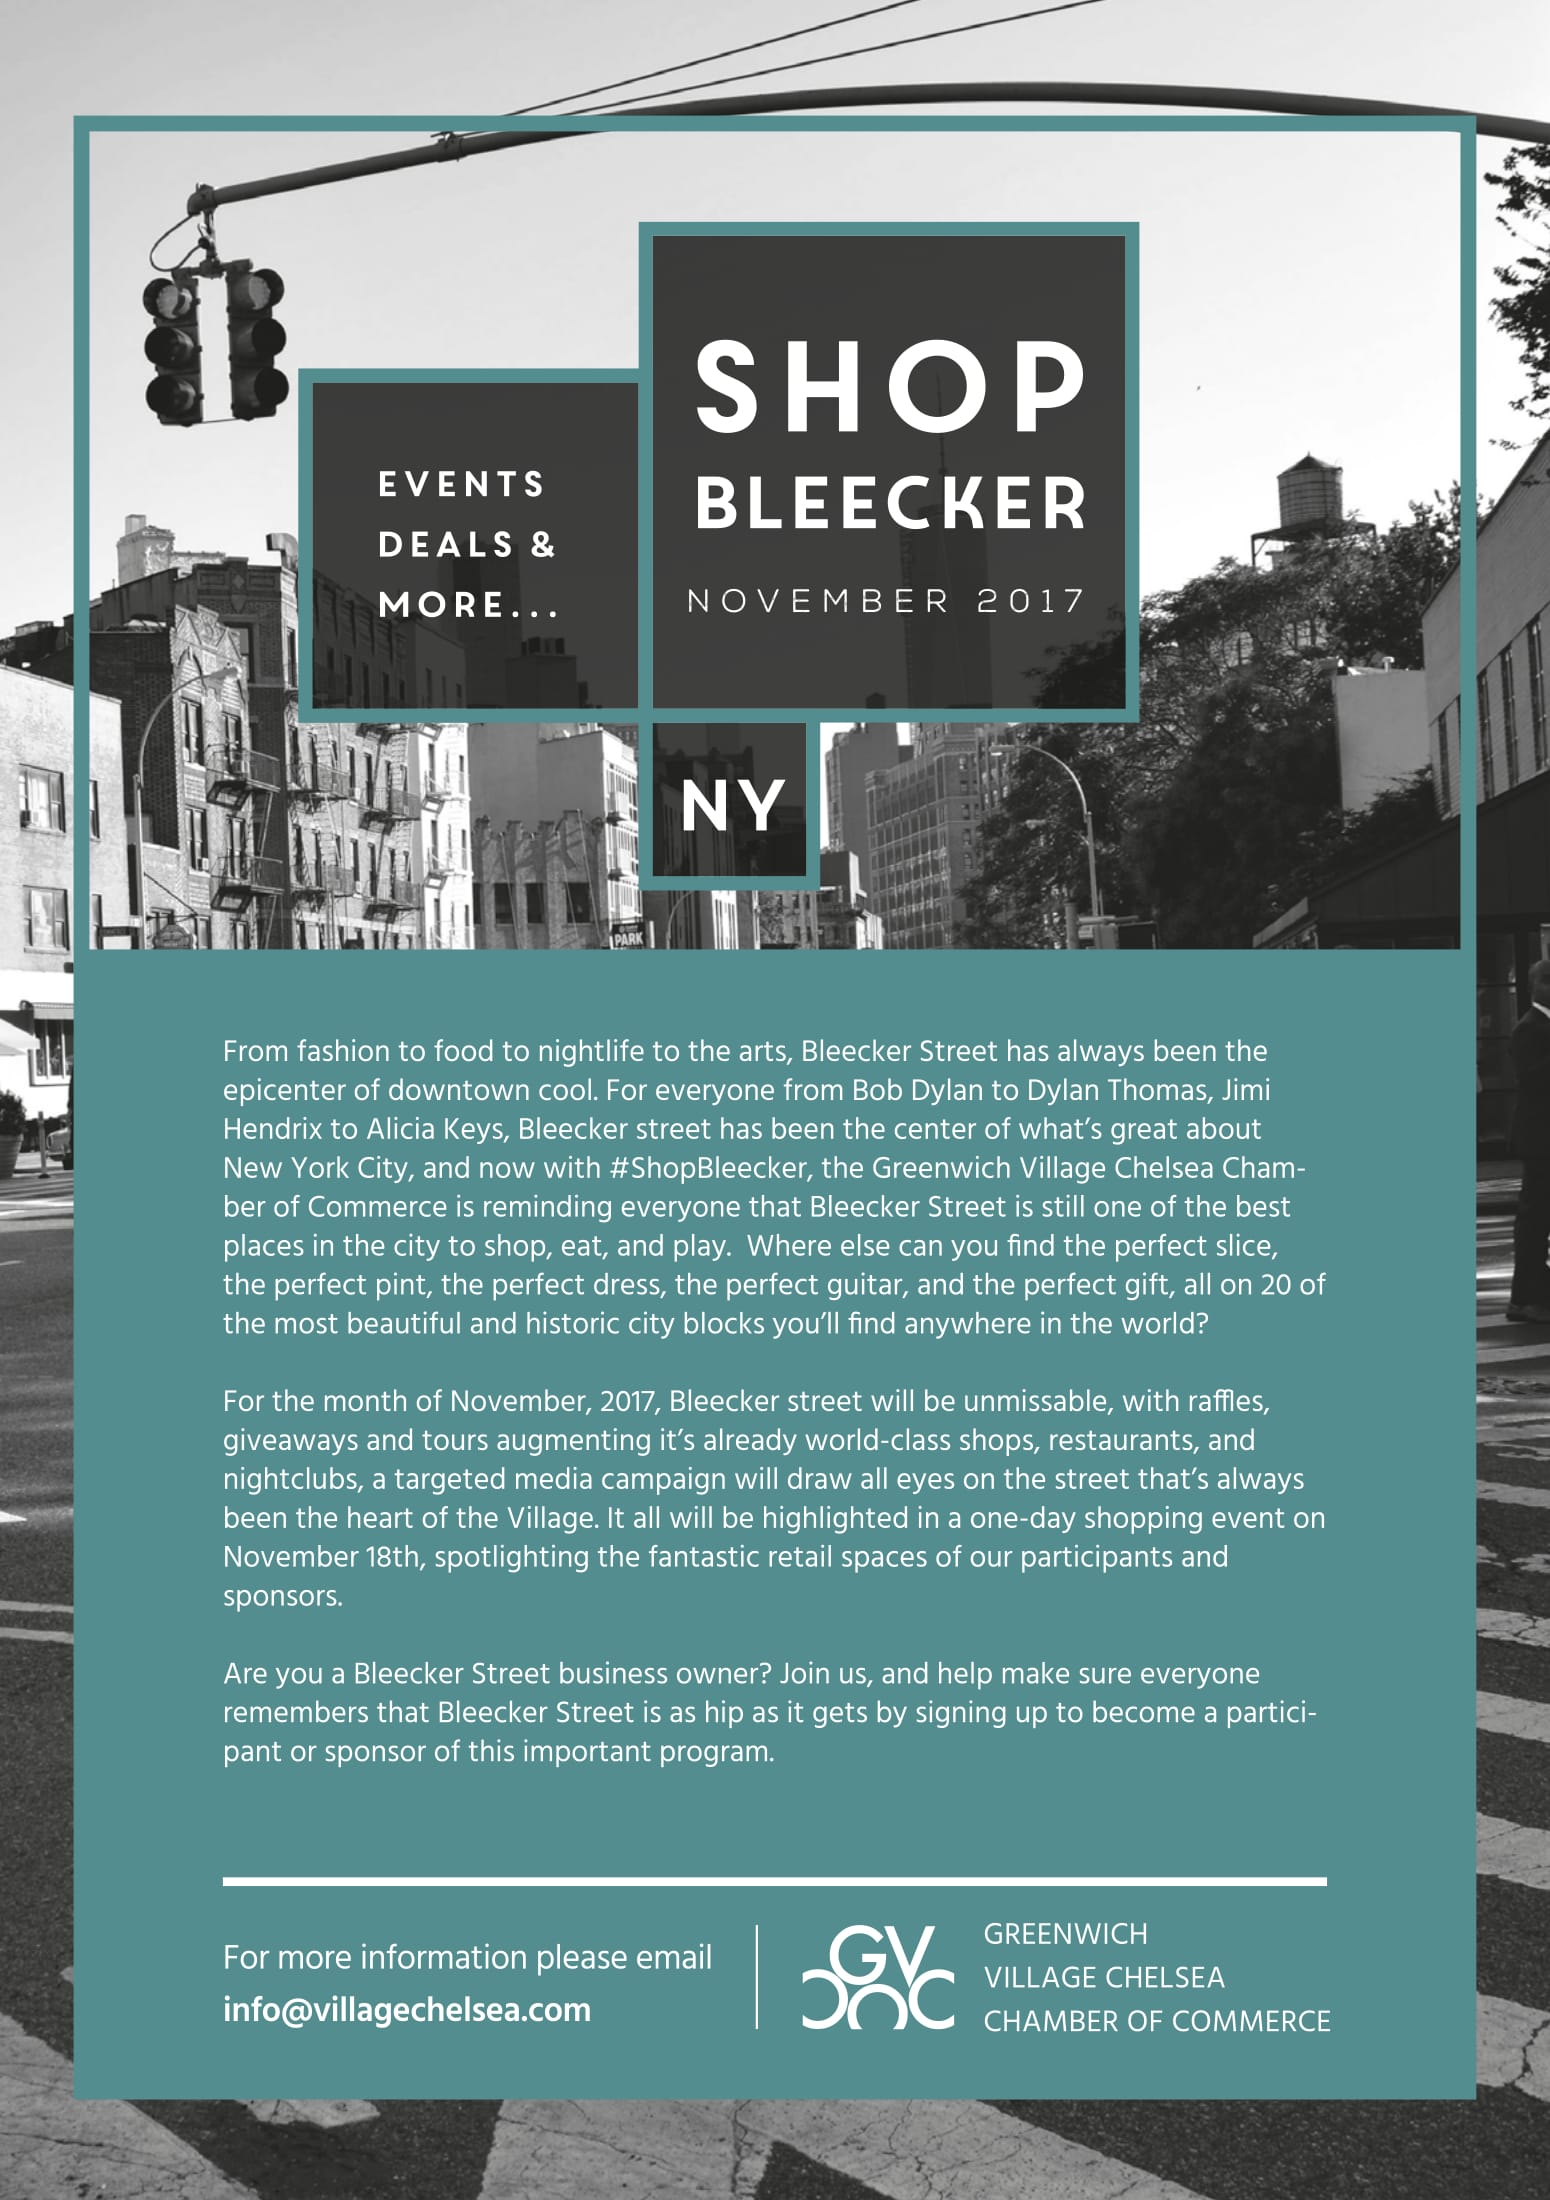 shopbleecker info